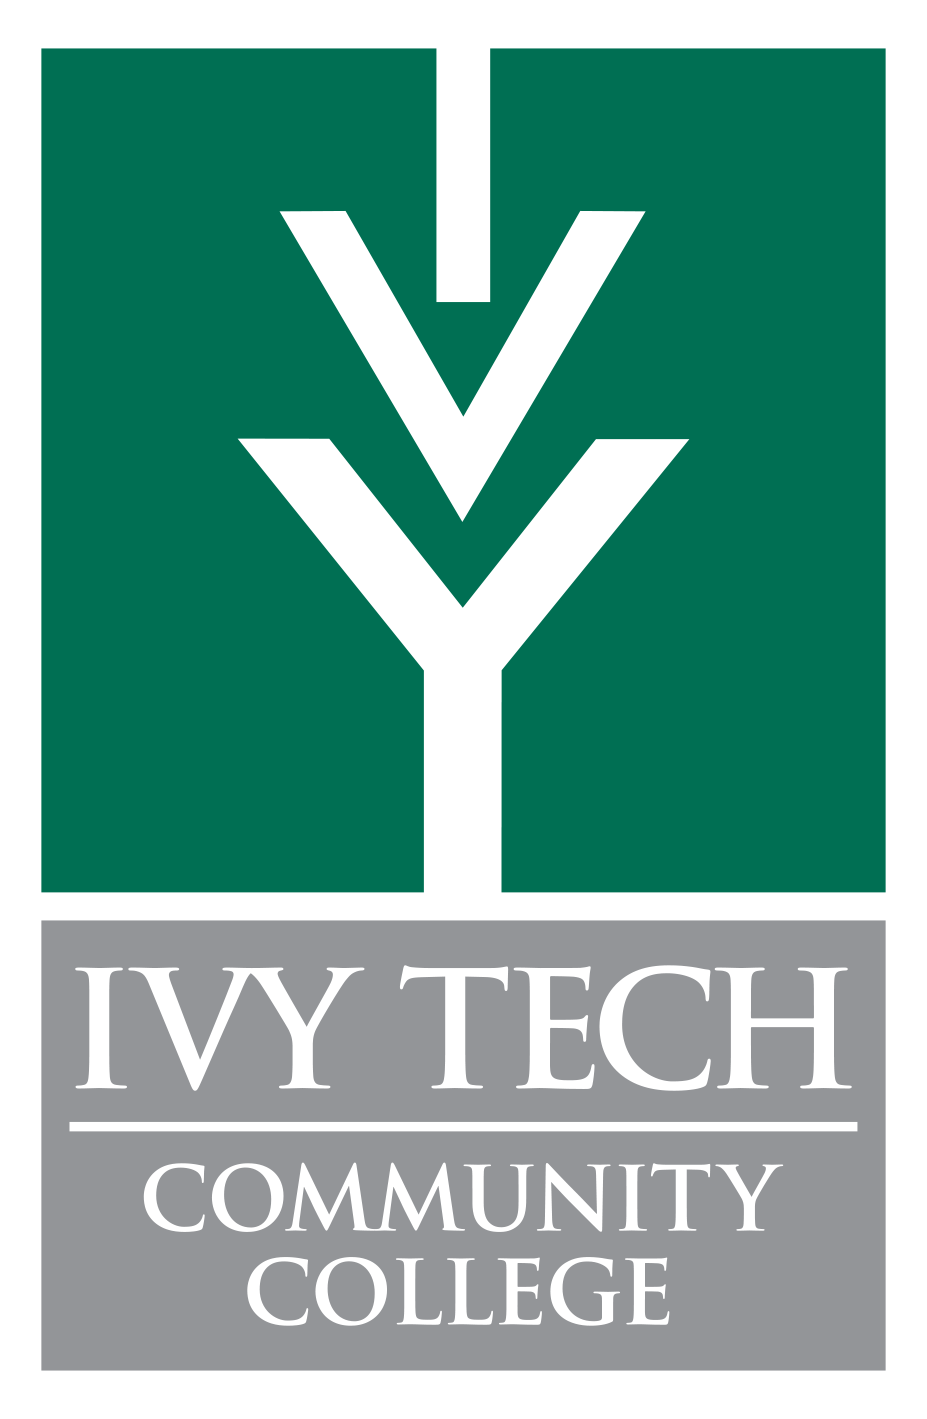 Ivy Tech Community College S Innovative Data Democratization Initiative Relies On Pentaho To Enable More Students Graduate